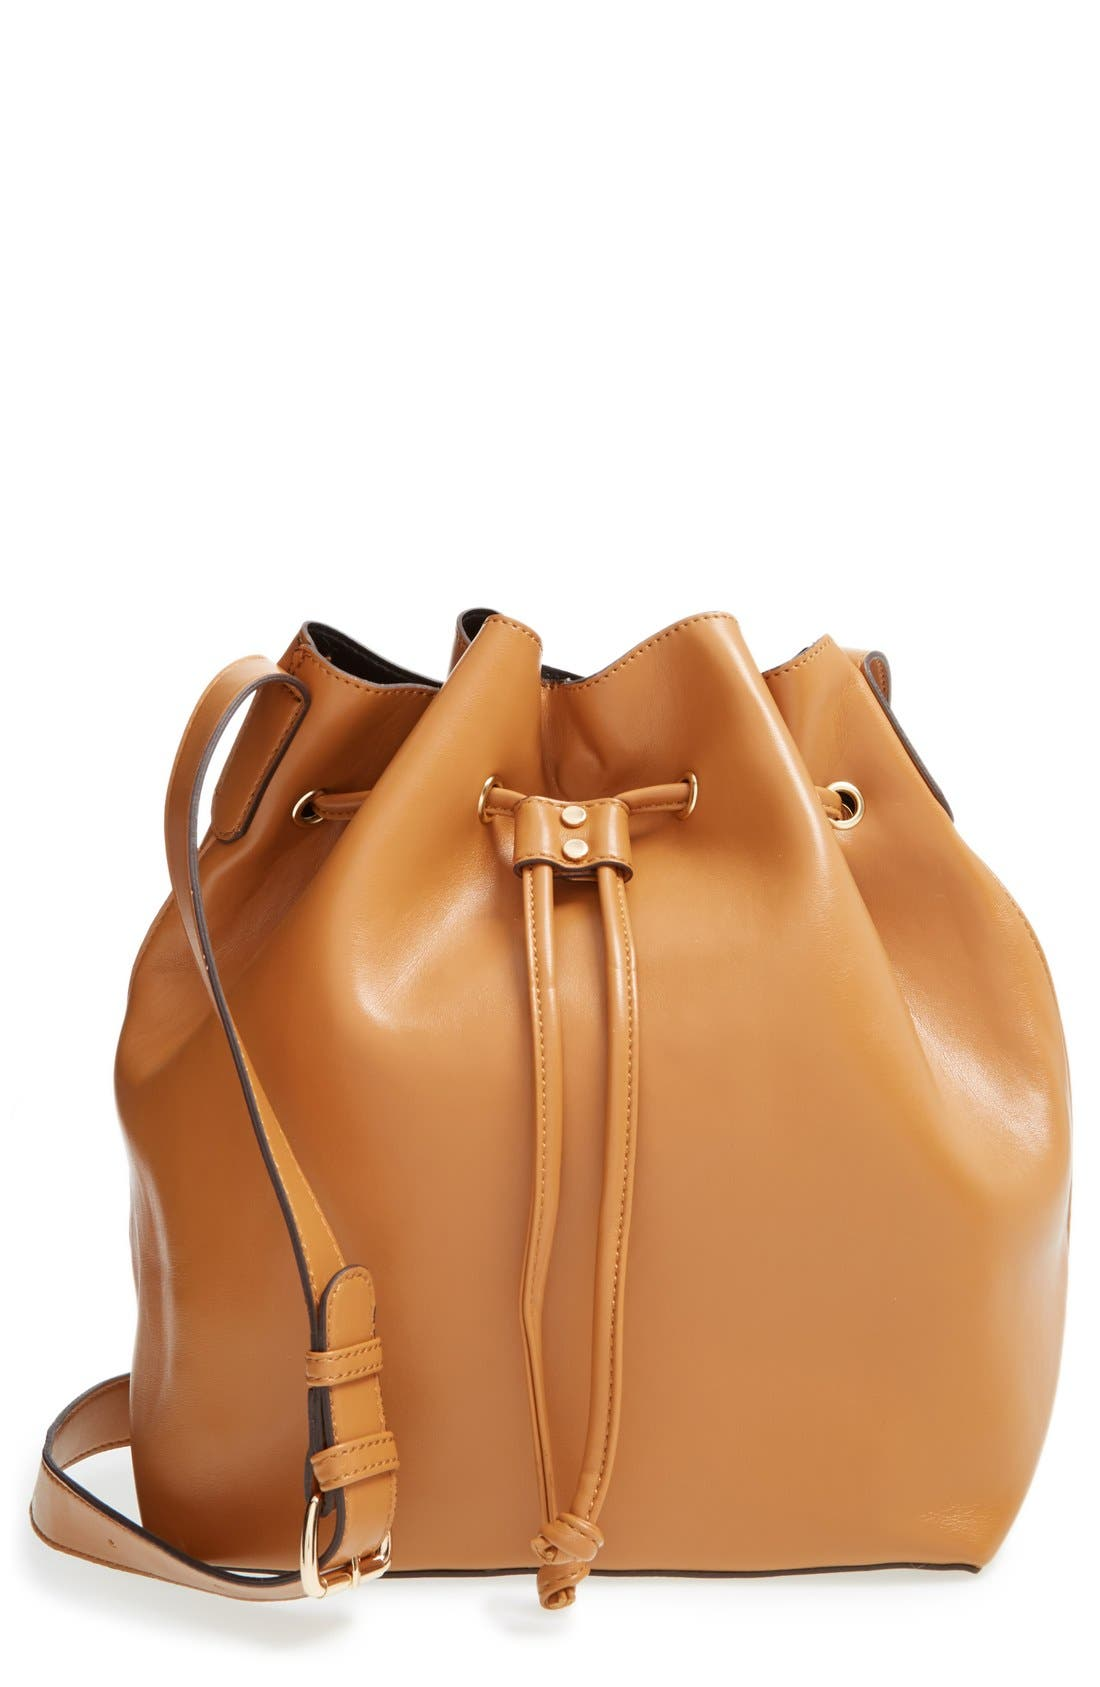 'Nevin' Faux Leather Drawstring Bucket Bag, Main, color, 200